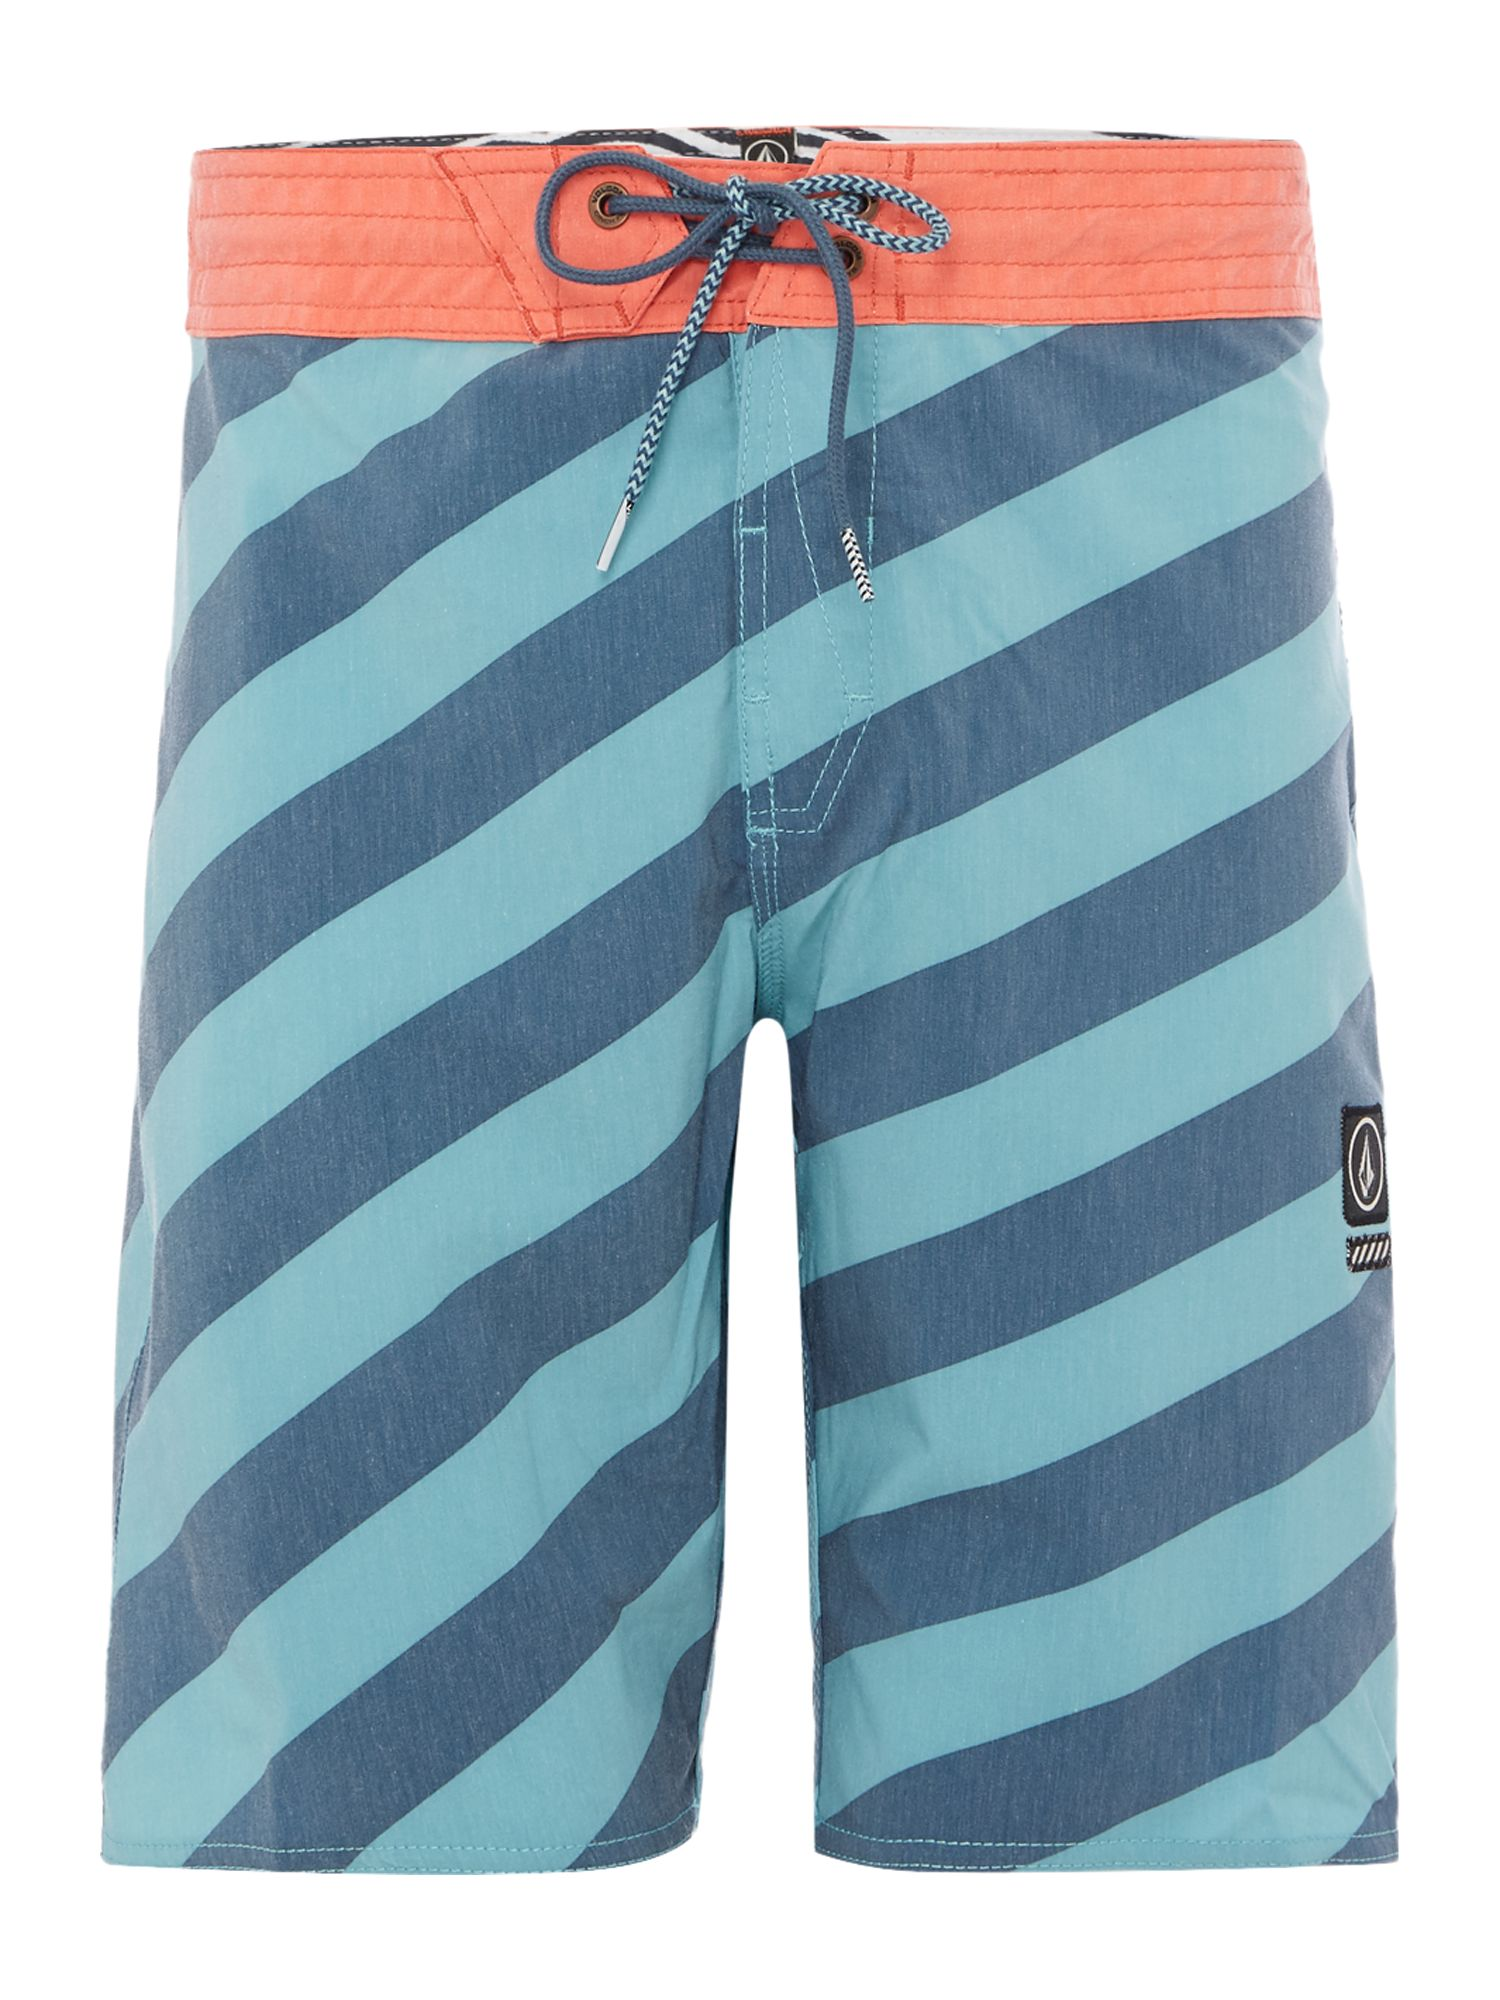 Men's Volcom 4-Way Stretch 19 Boardshort, Sea Blue